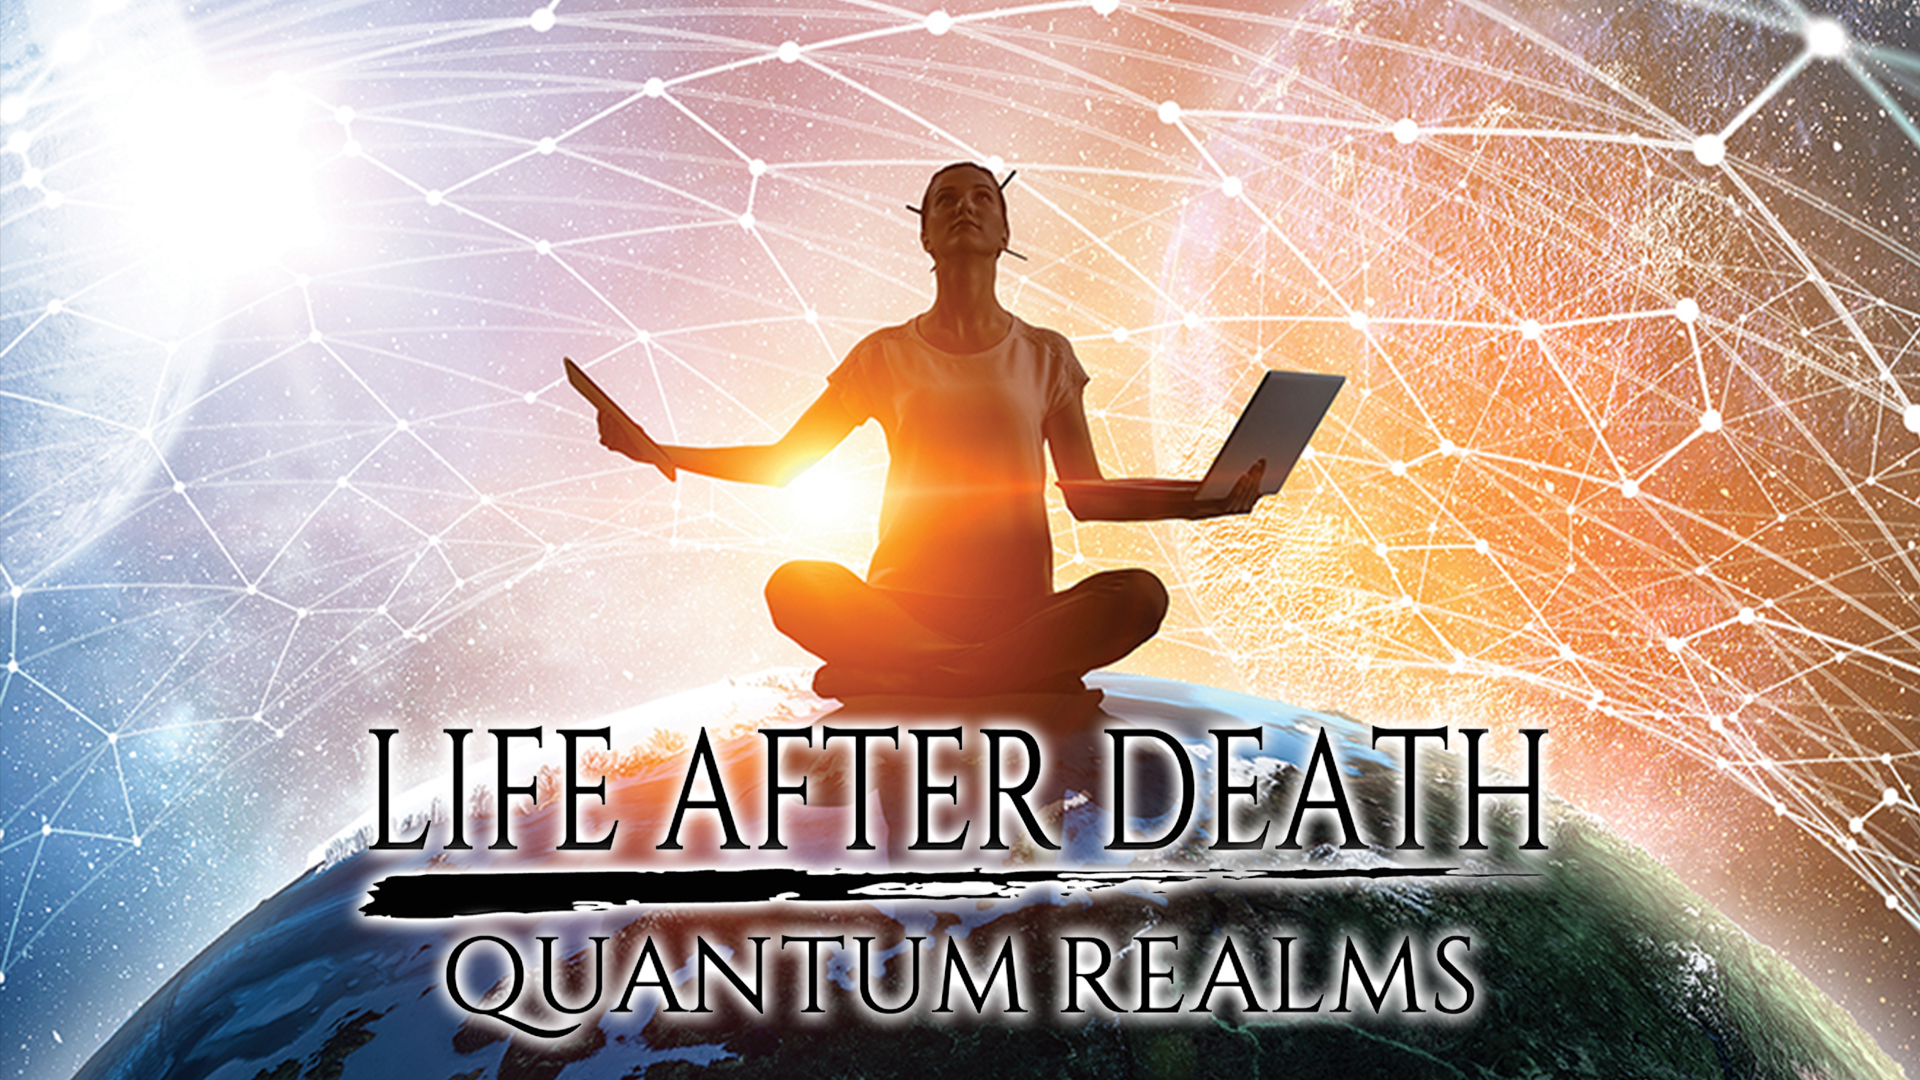 Life After Death: Quantum Realms